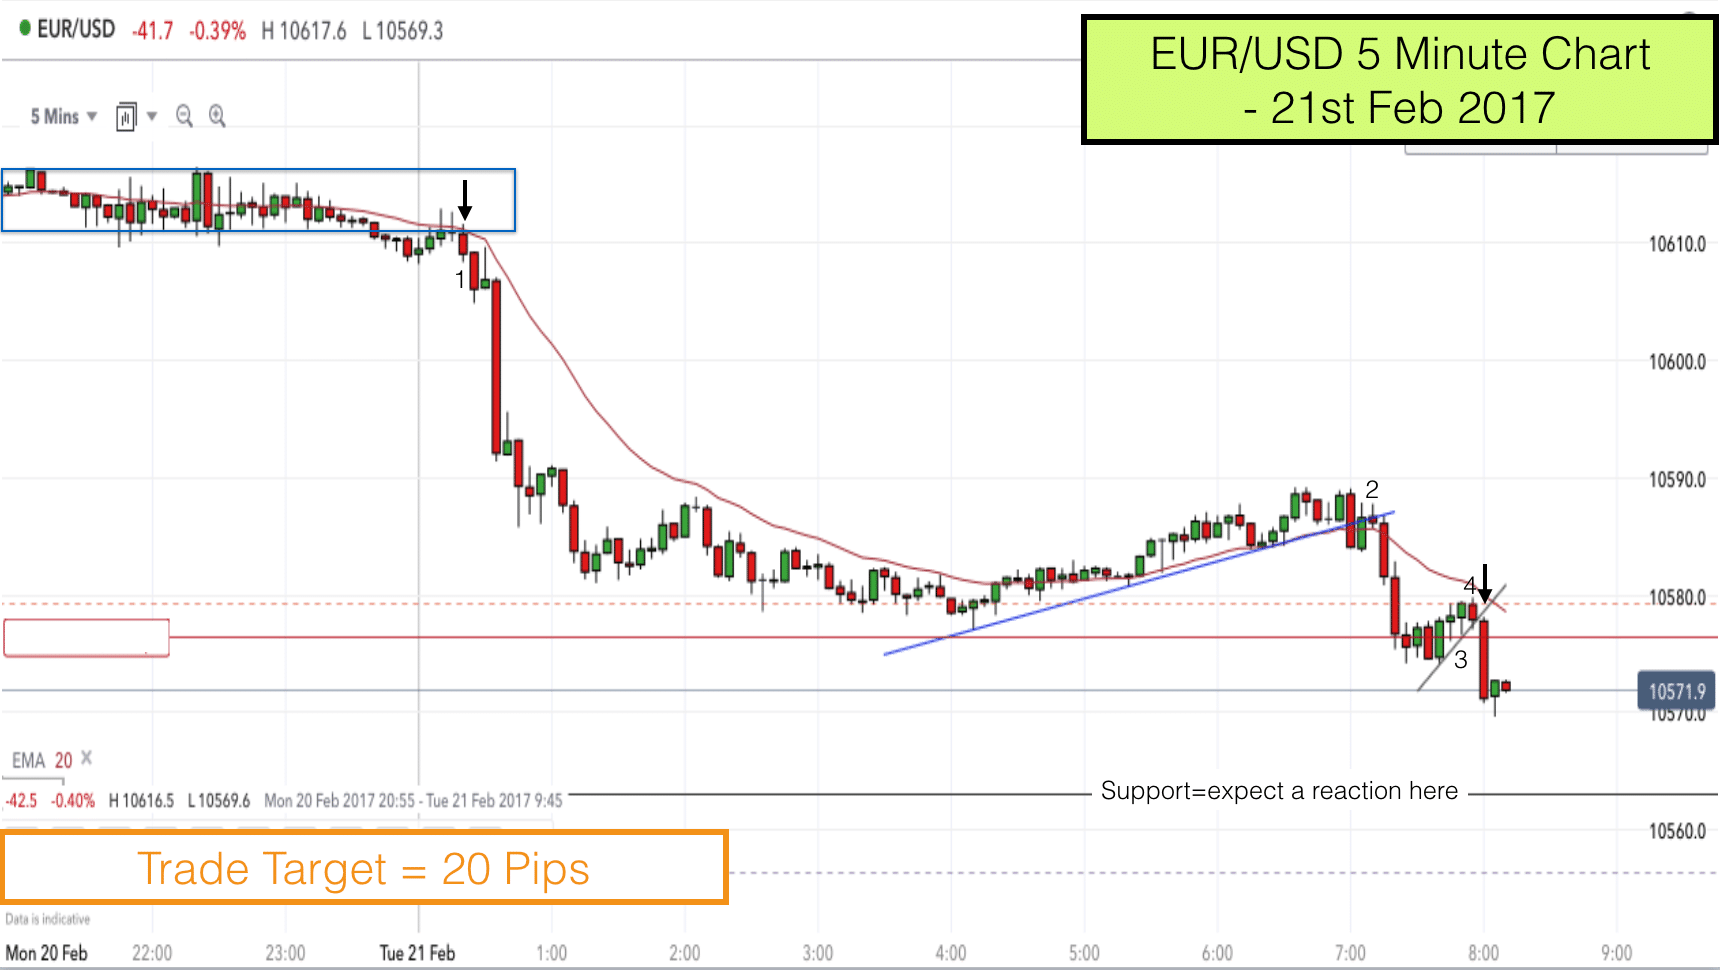 EURUSD pullback reversal trade 21st Feb 2017 8.10am